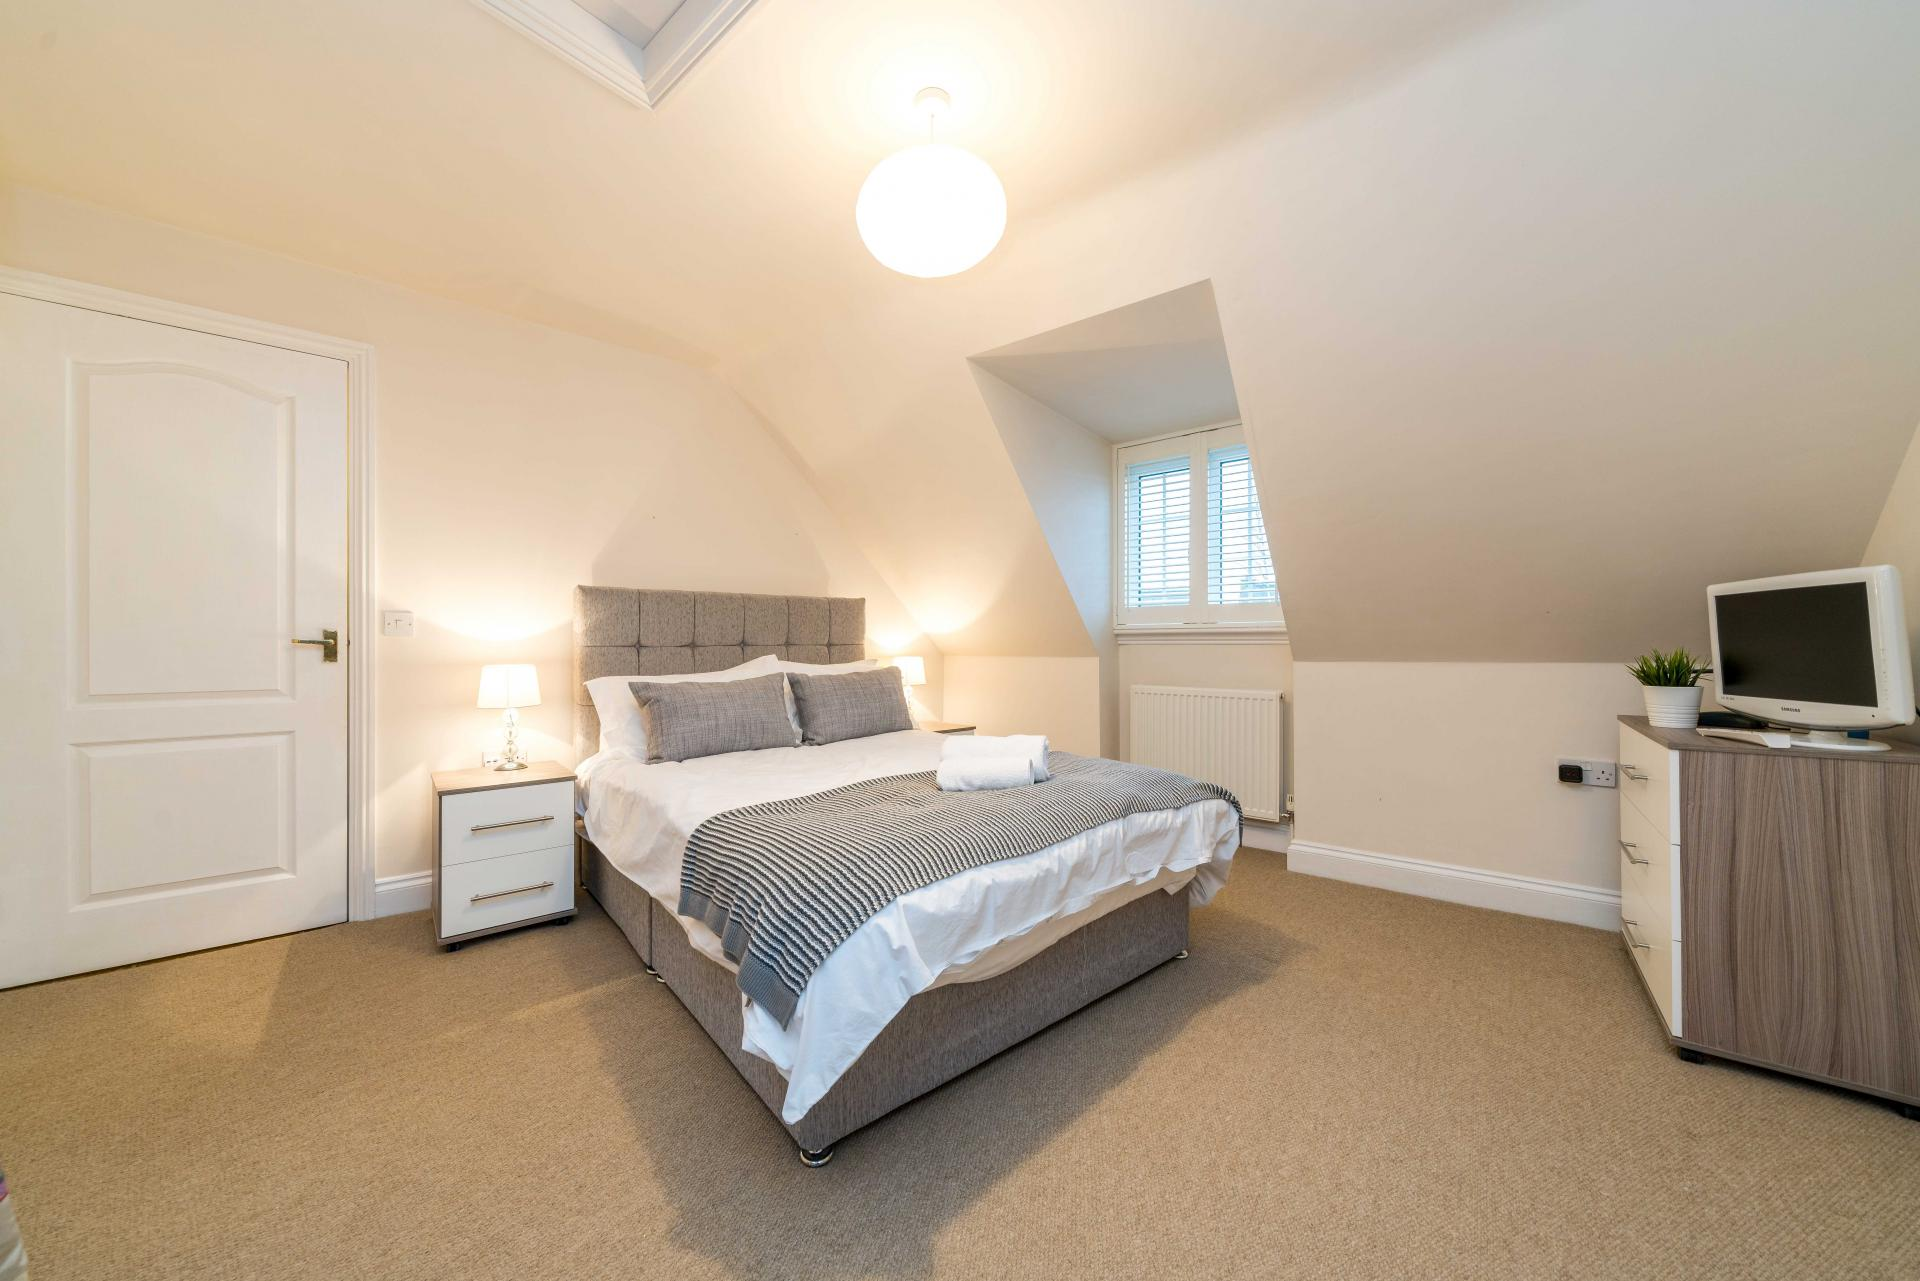 Bedroom 3 at Stowfield House